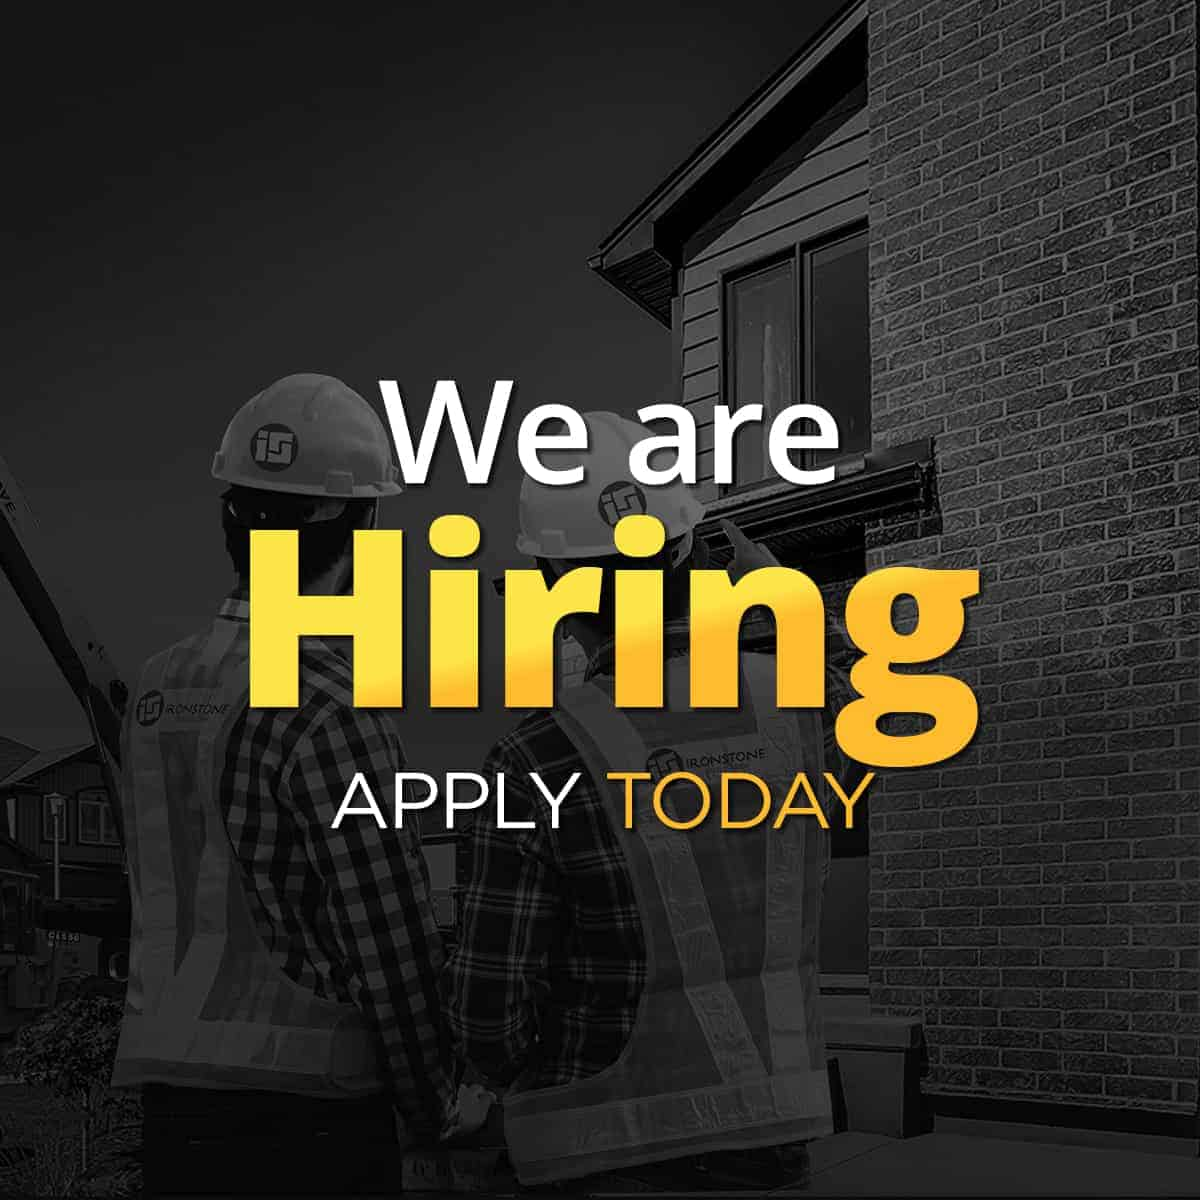 Text on image saying: We are Hiring. Apply Today